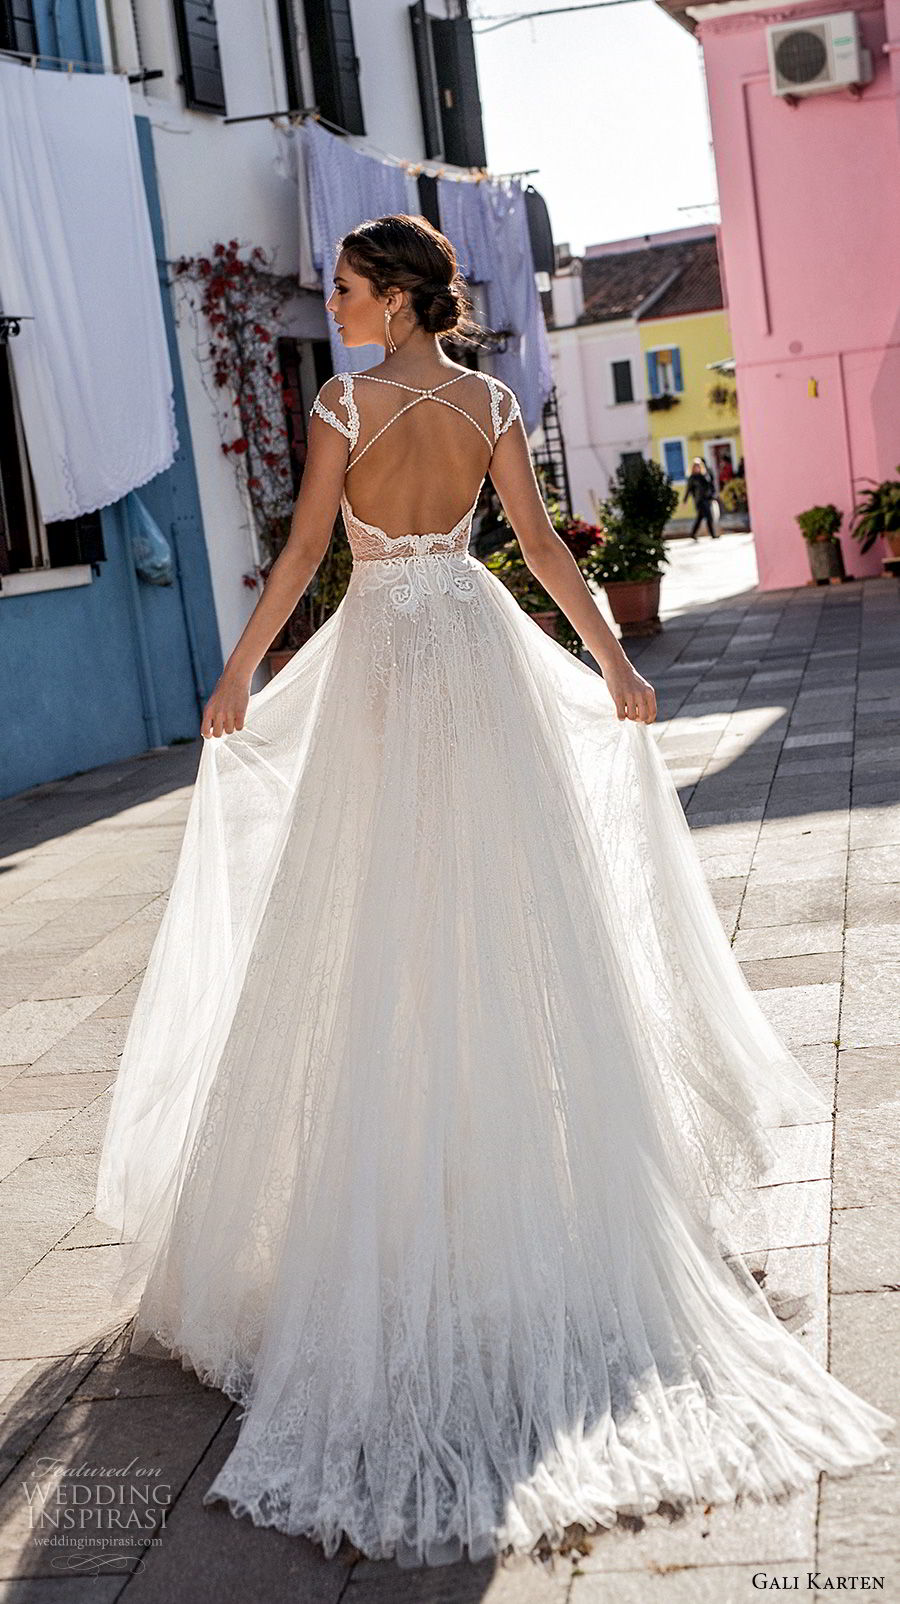 gali karten 2018 bridal cap sleeves scoop neckline heavily embellished bodice romantic soft a line wedding dress keyhole back medium train (2) bv